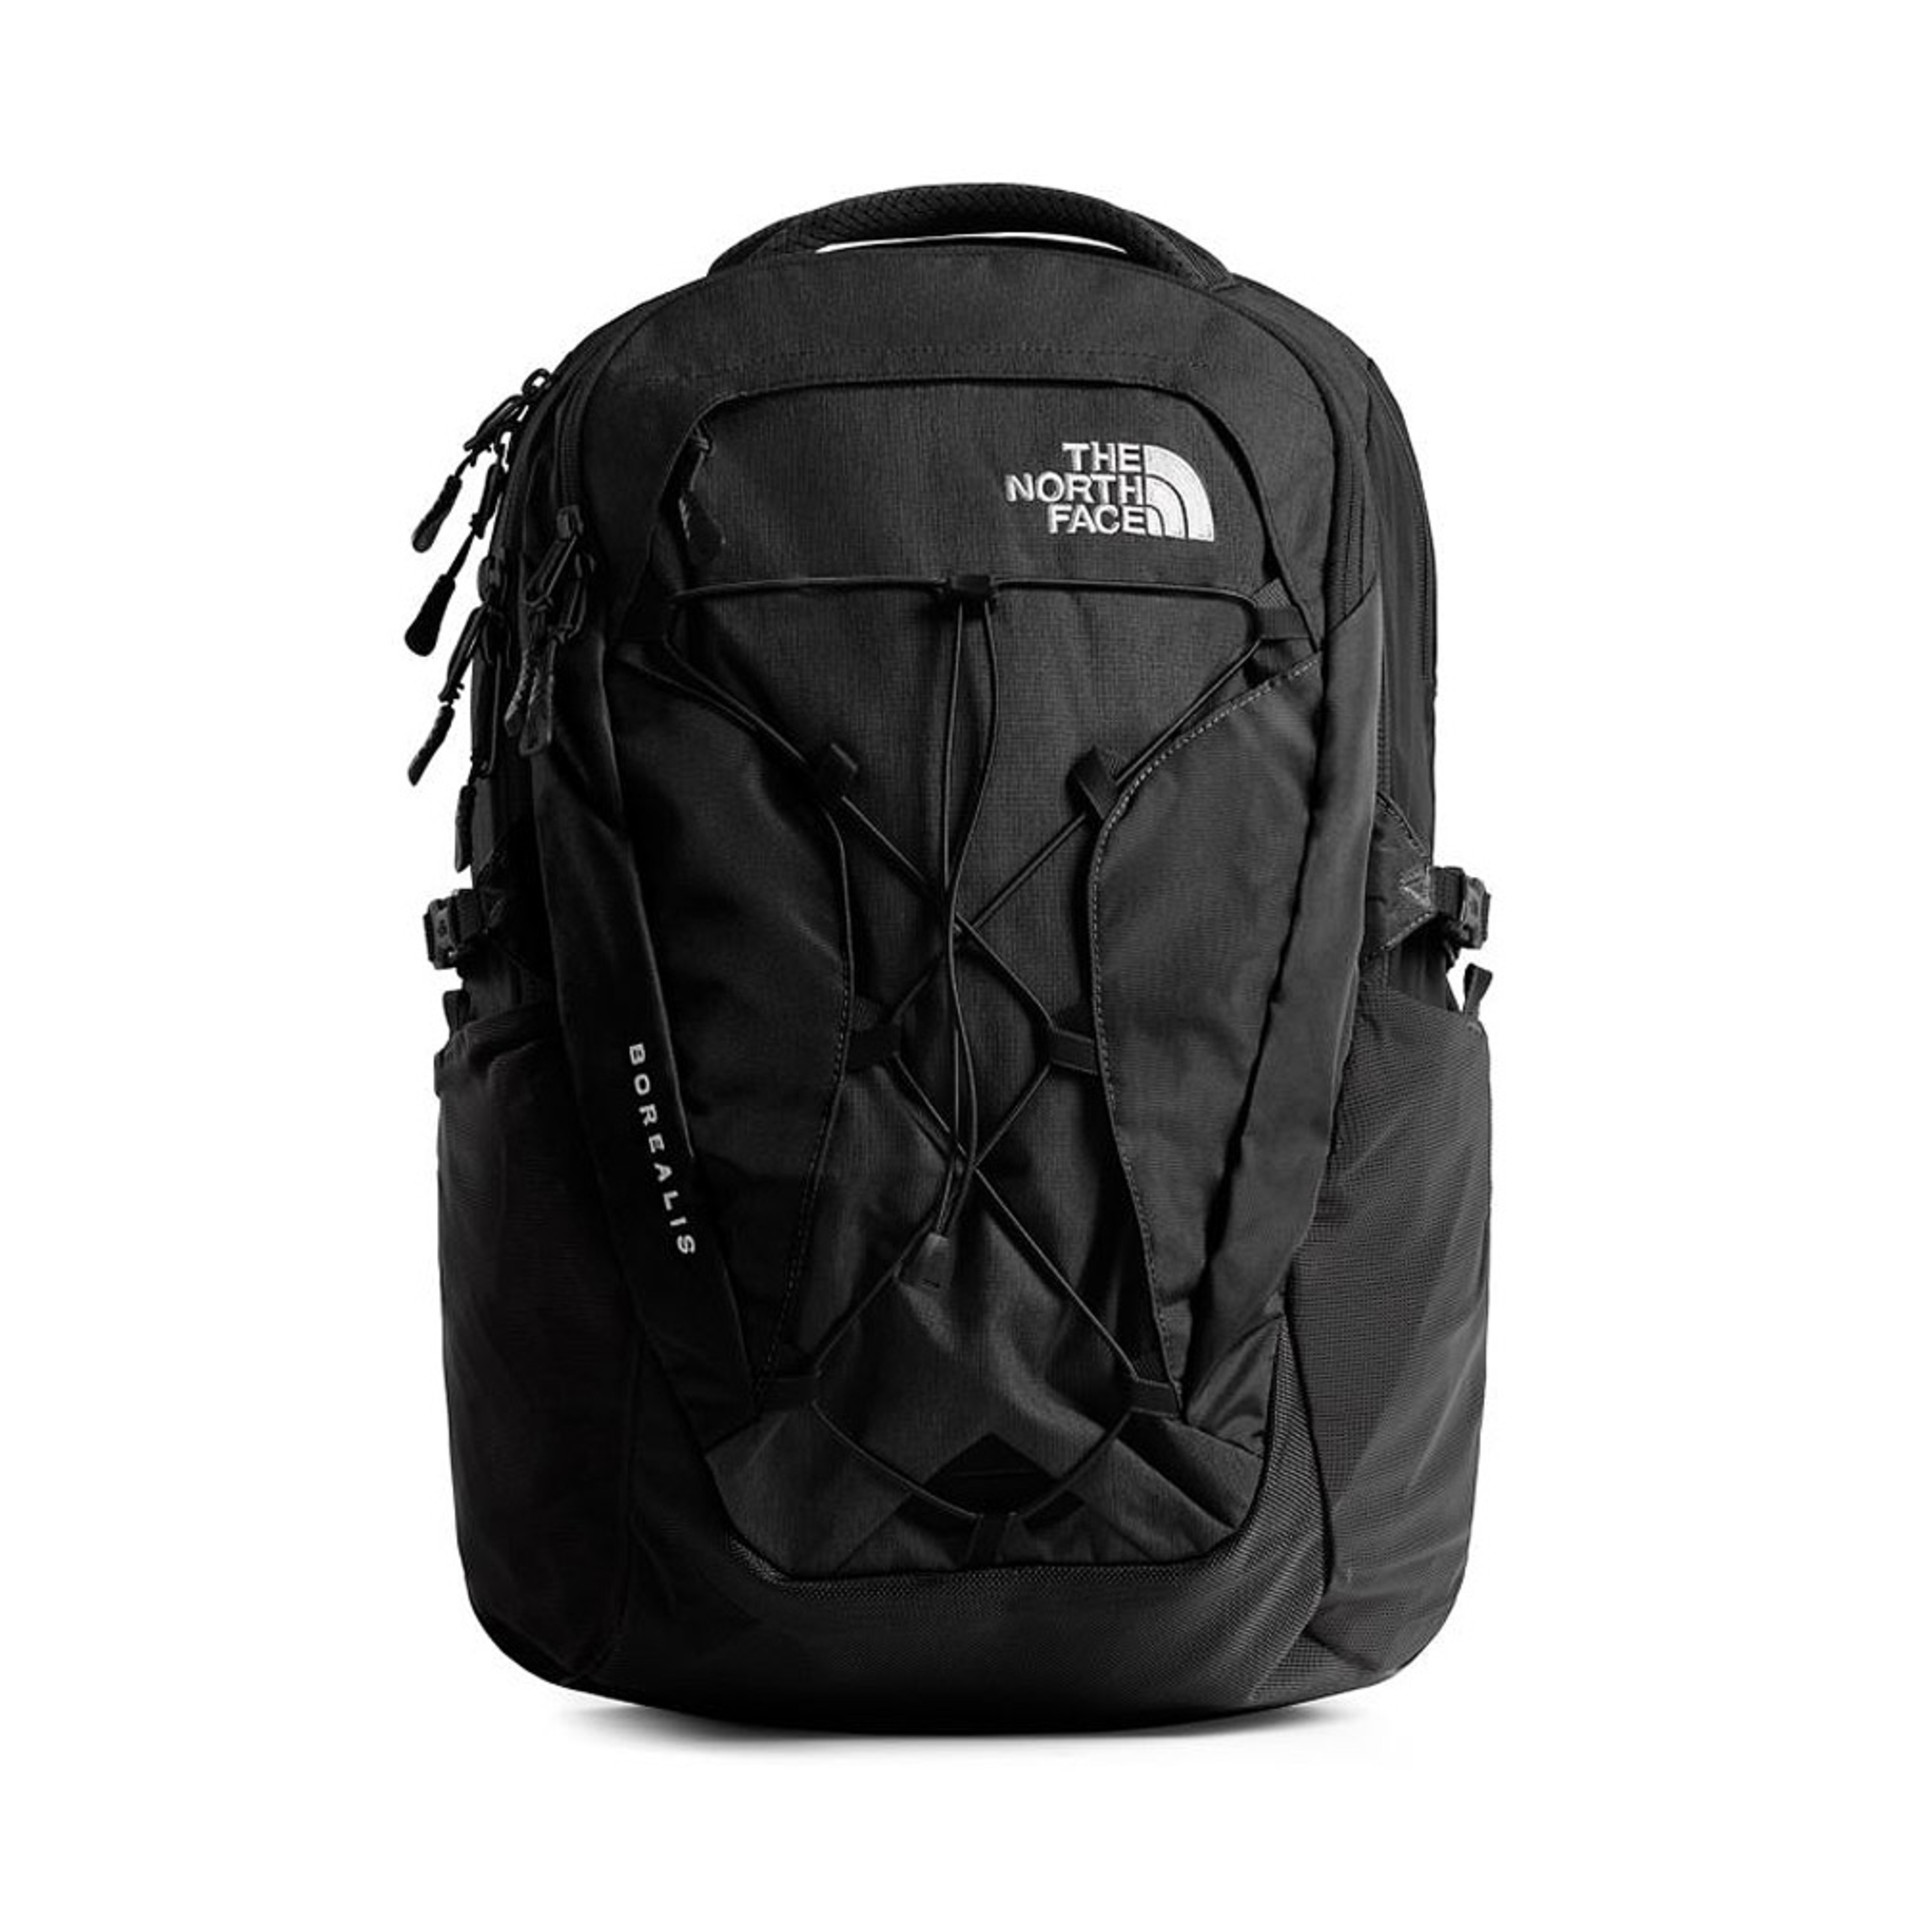 The North Face Women's Borealis Backpack Black Front